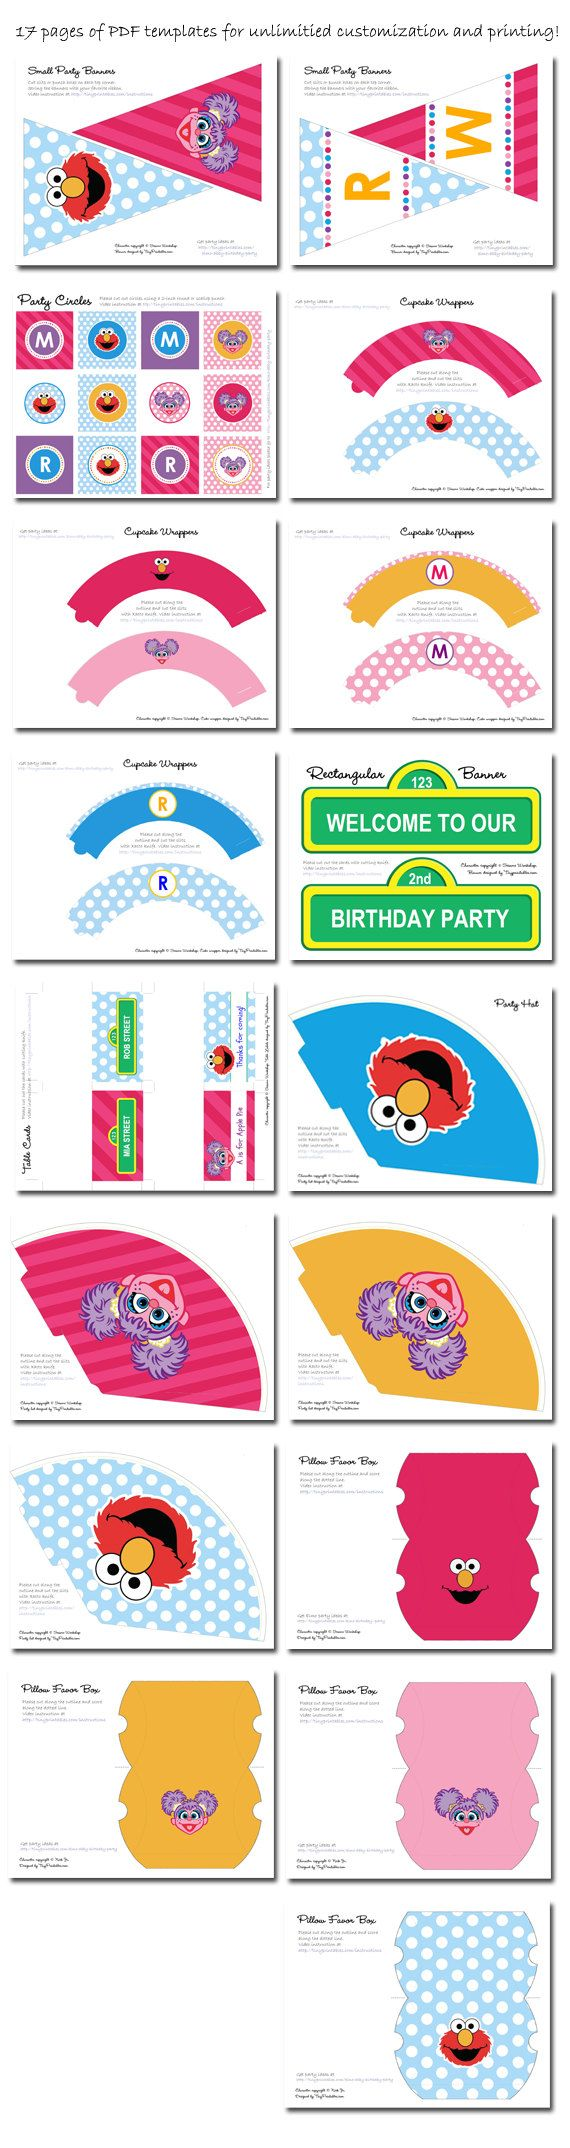 Sofia's 2.....Abby and Elmo Birthday Party Printables With Matching Invitations (Boy & Girl Version)